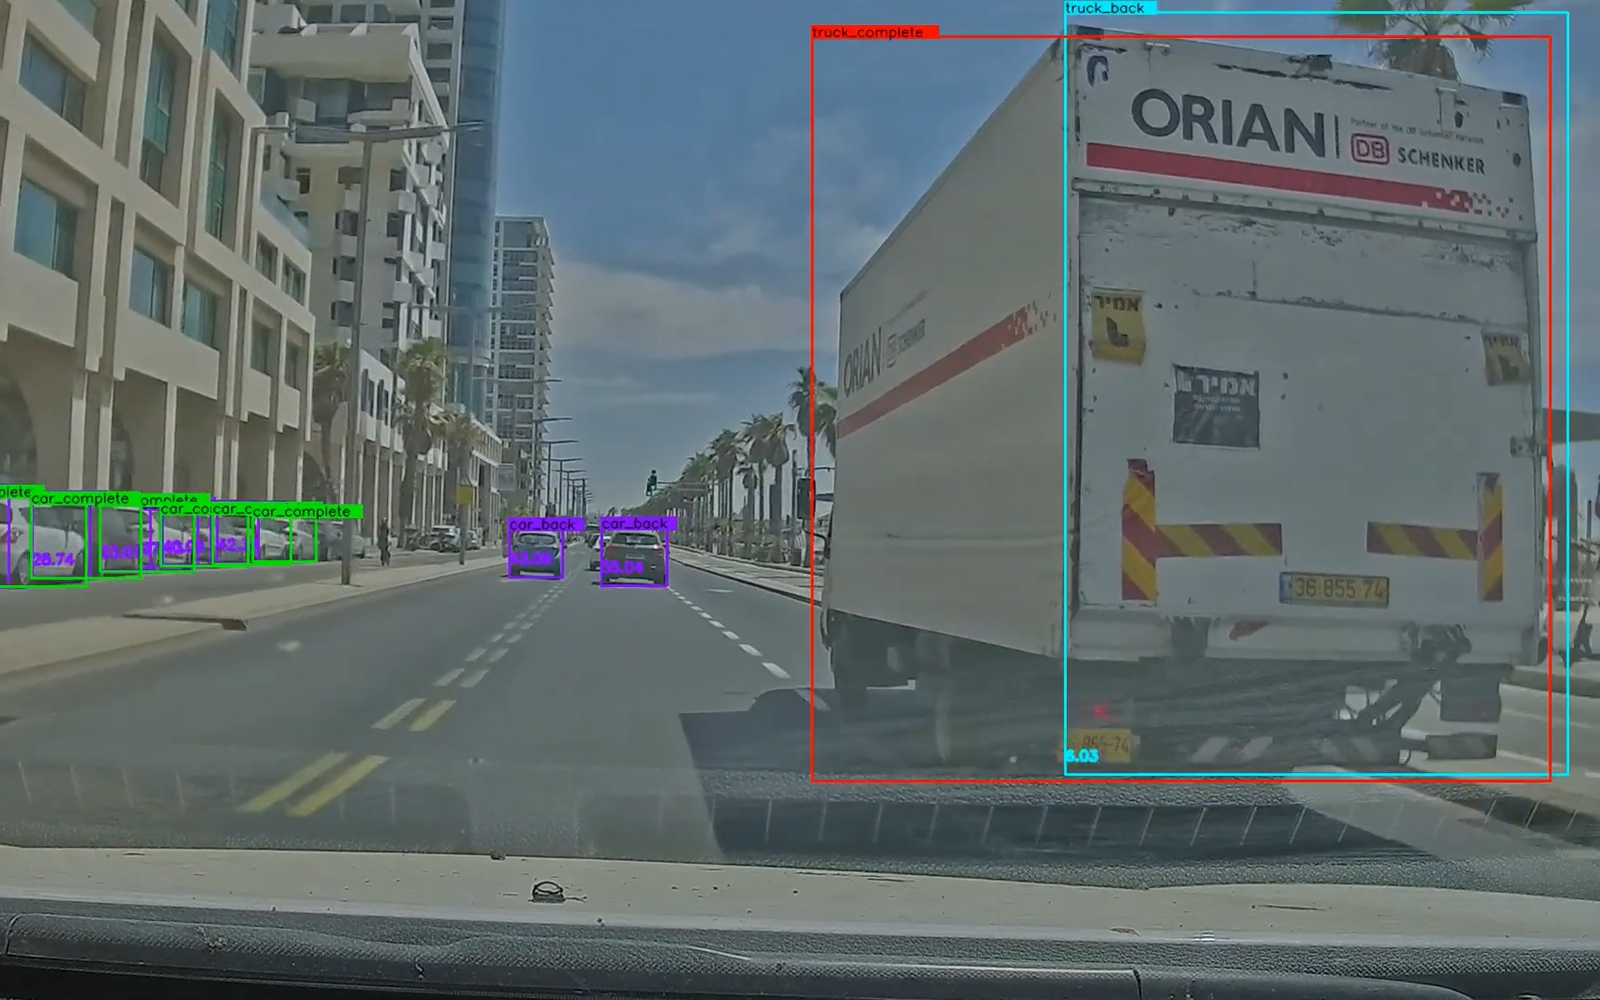 timesofisrael.com - Sara Toth Stub - Tel Aviv startup offers clear route for car computer vision